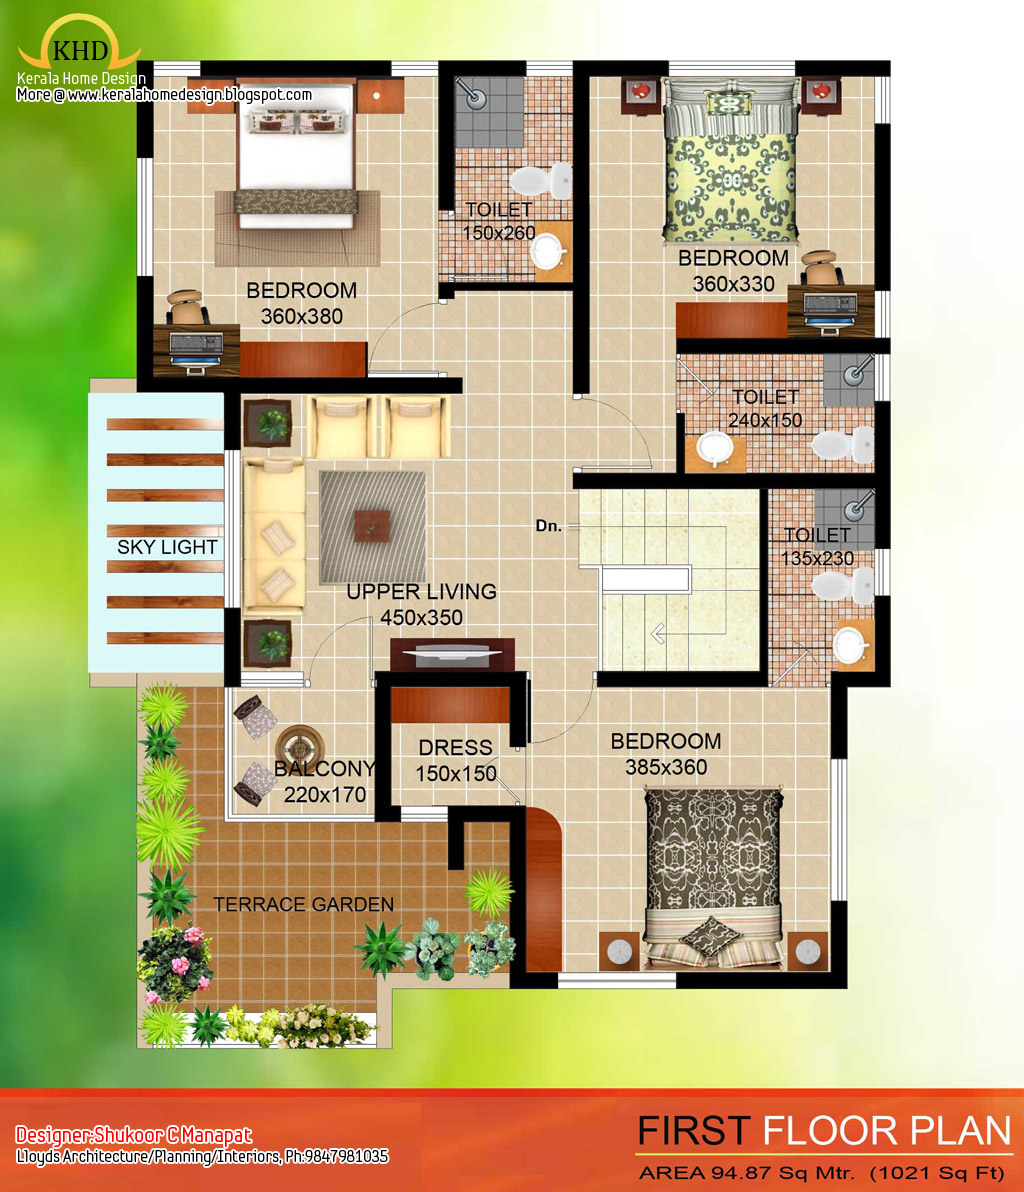 New Home Designs Latest October 2011: 2035 Sq. Ft 4 Bedroom Contemporary Villa Elevation And